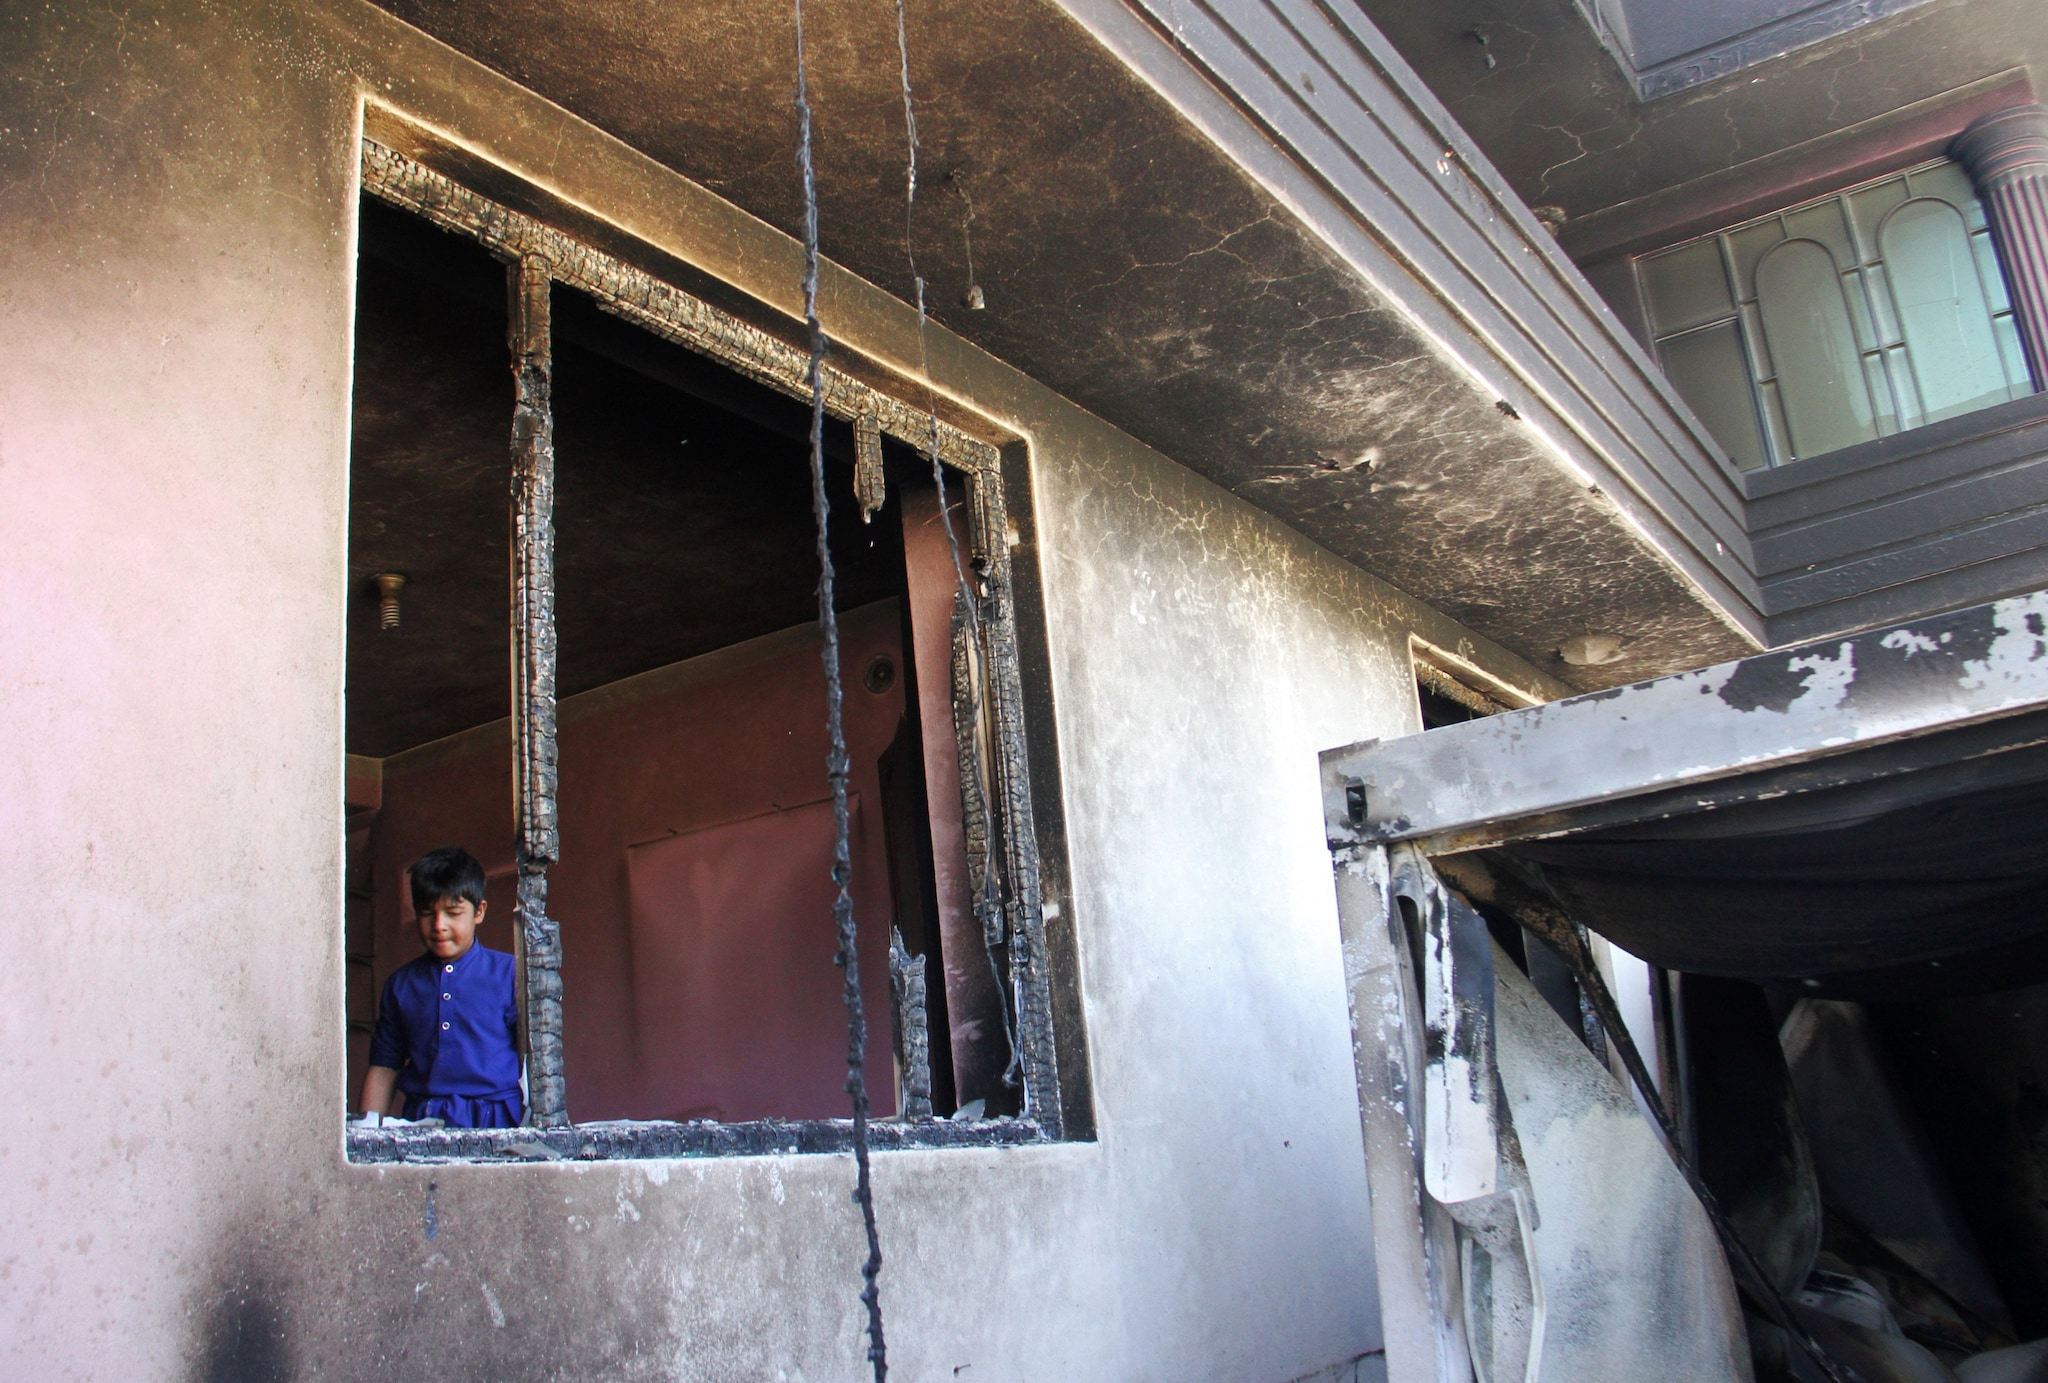 An Afghan boy is seen inside a burnt building after a Taliban attack in Ghazni city, Afghanistan